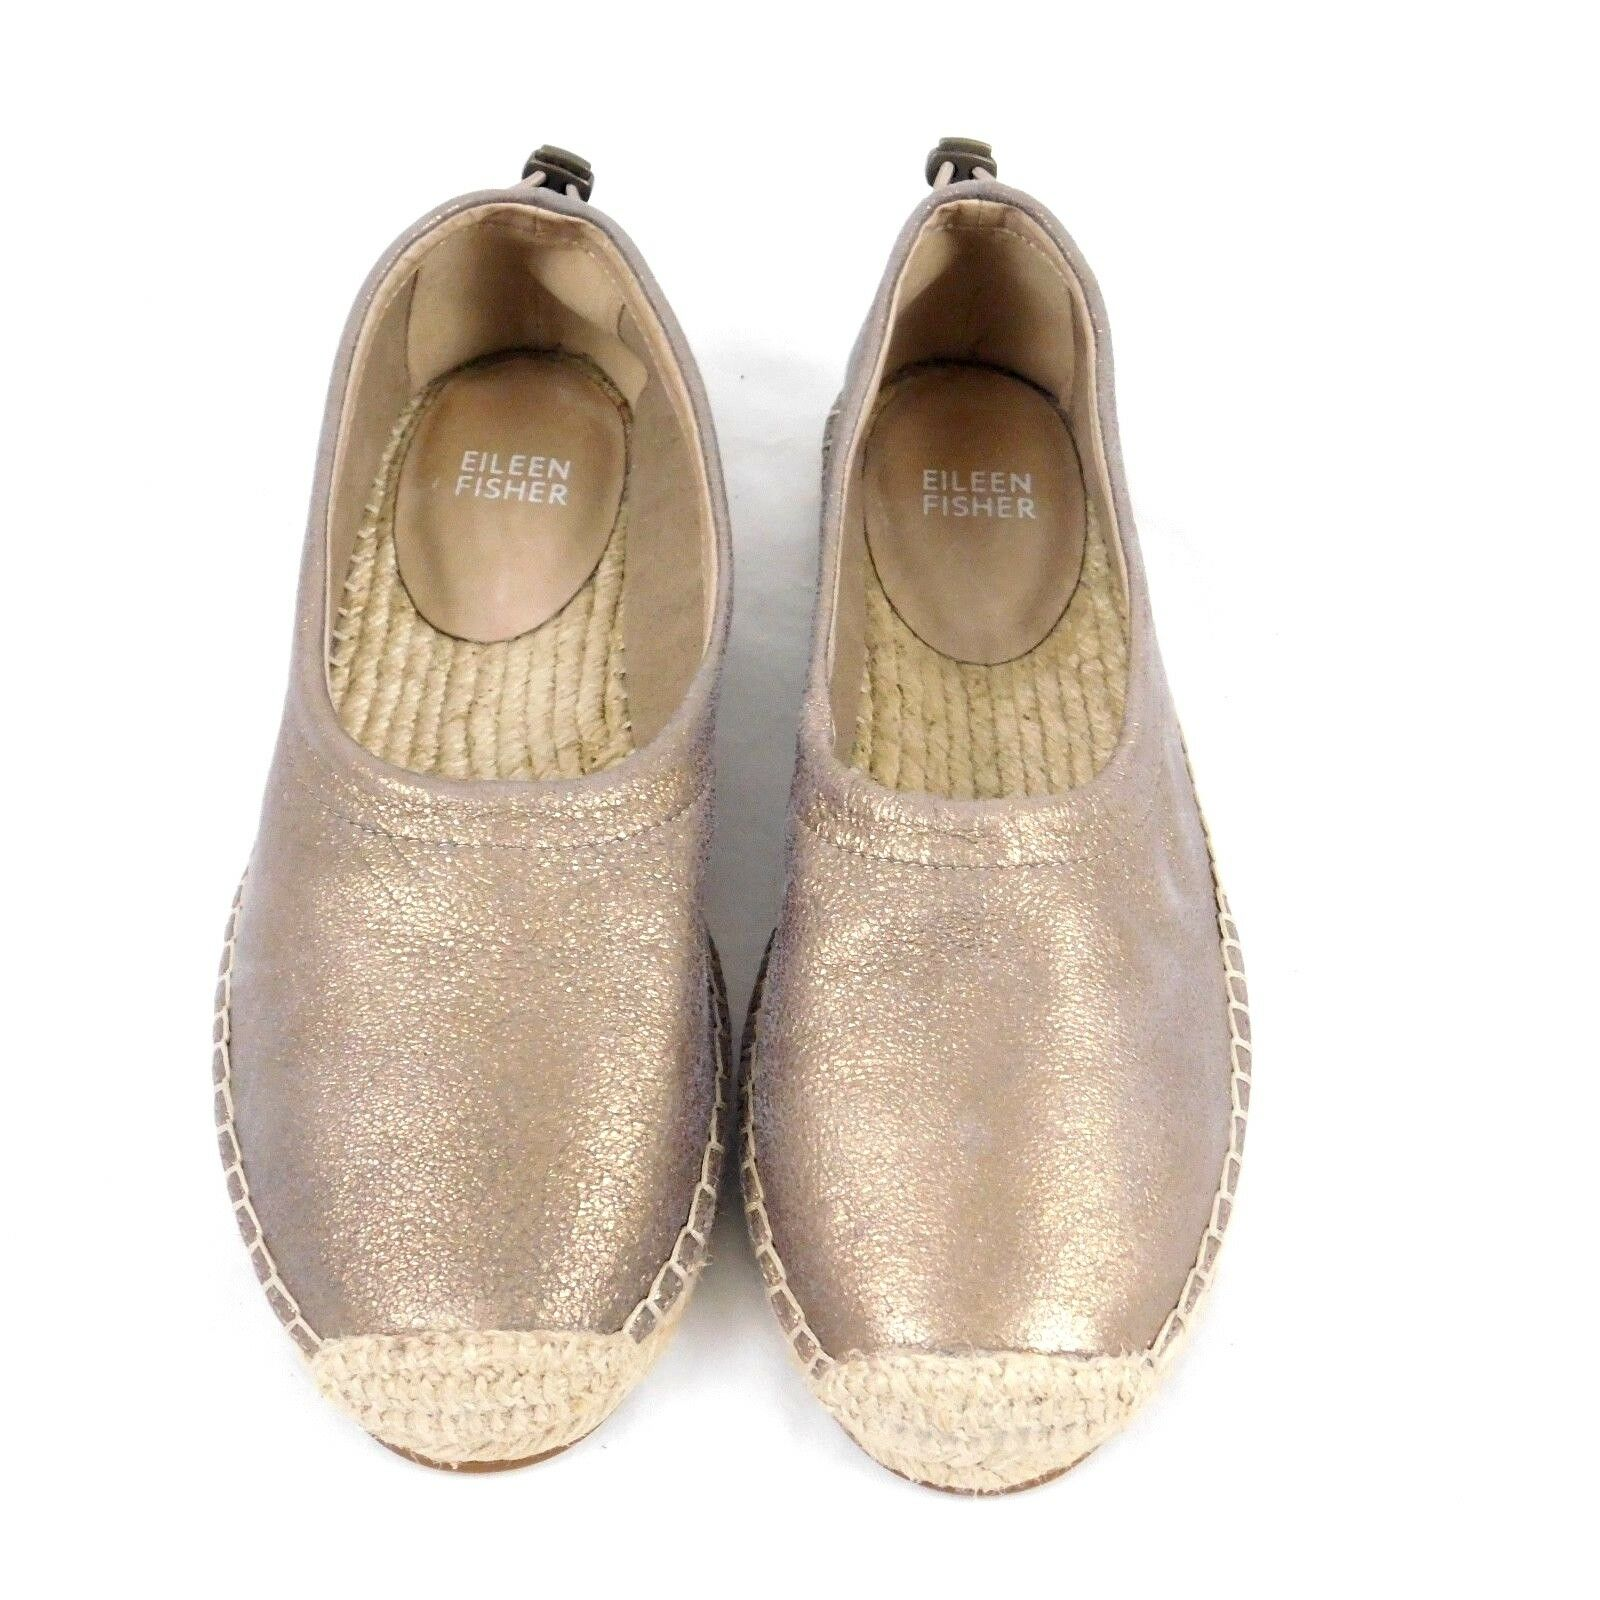 Eileen Fisher Bali Espadrille Slide On Platinum Metallic  Jute shoes Sz 6.5